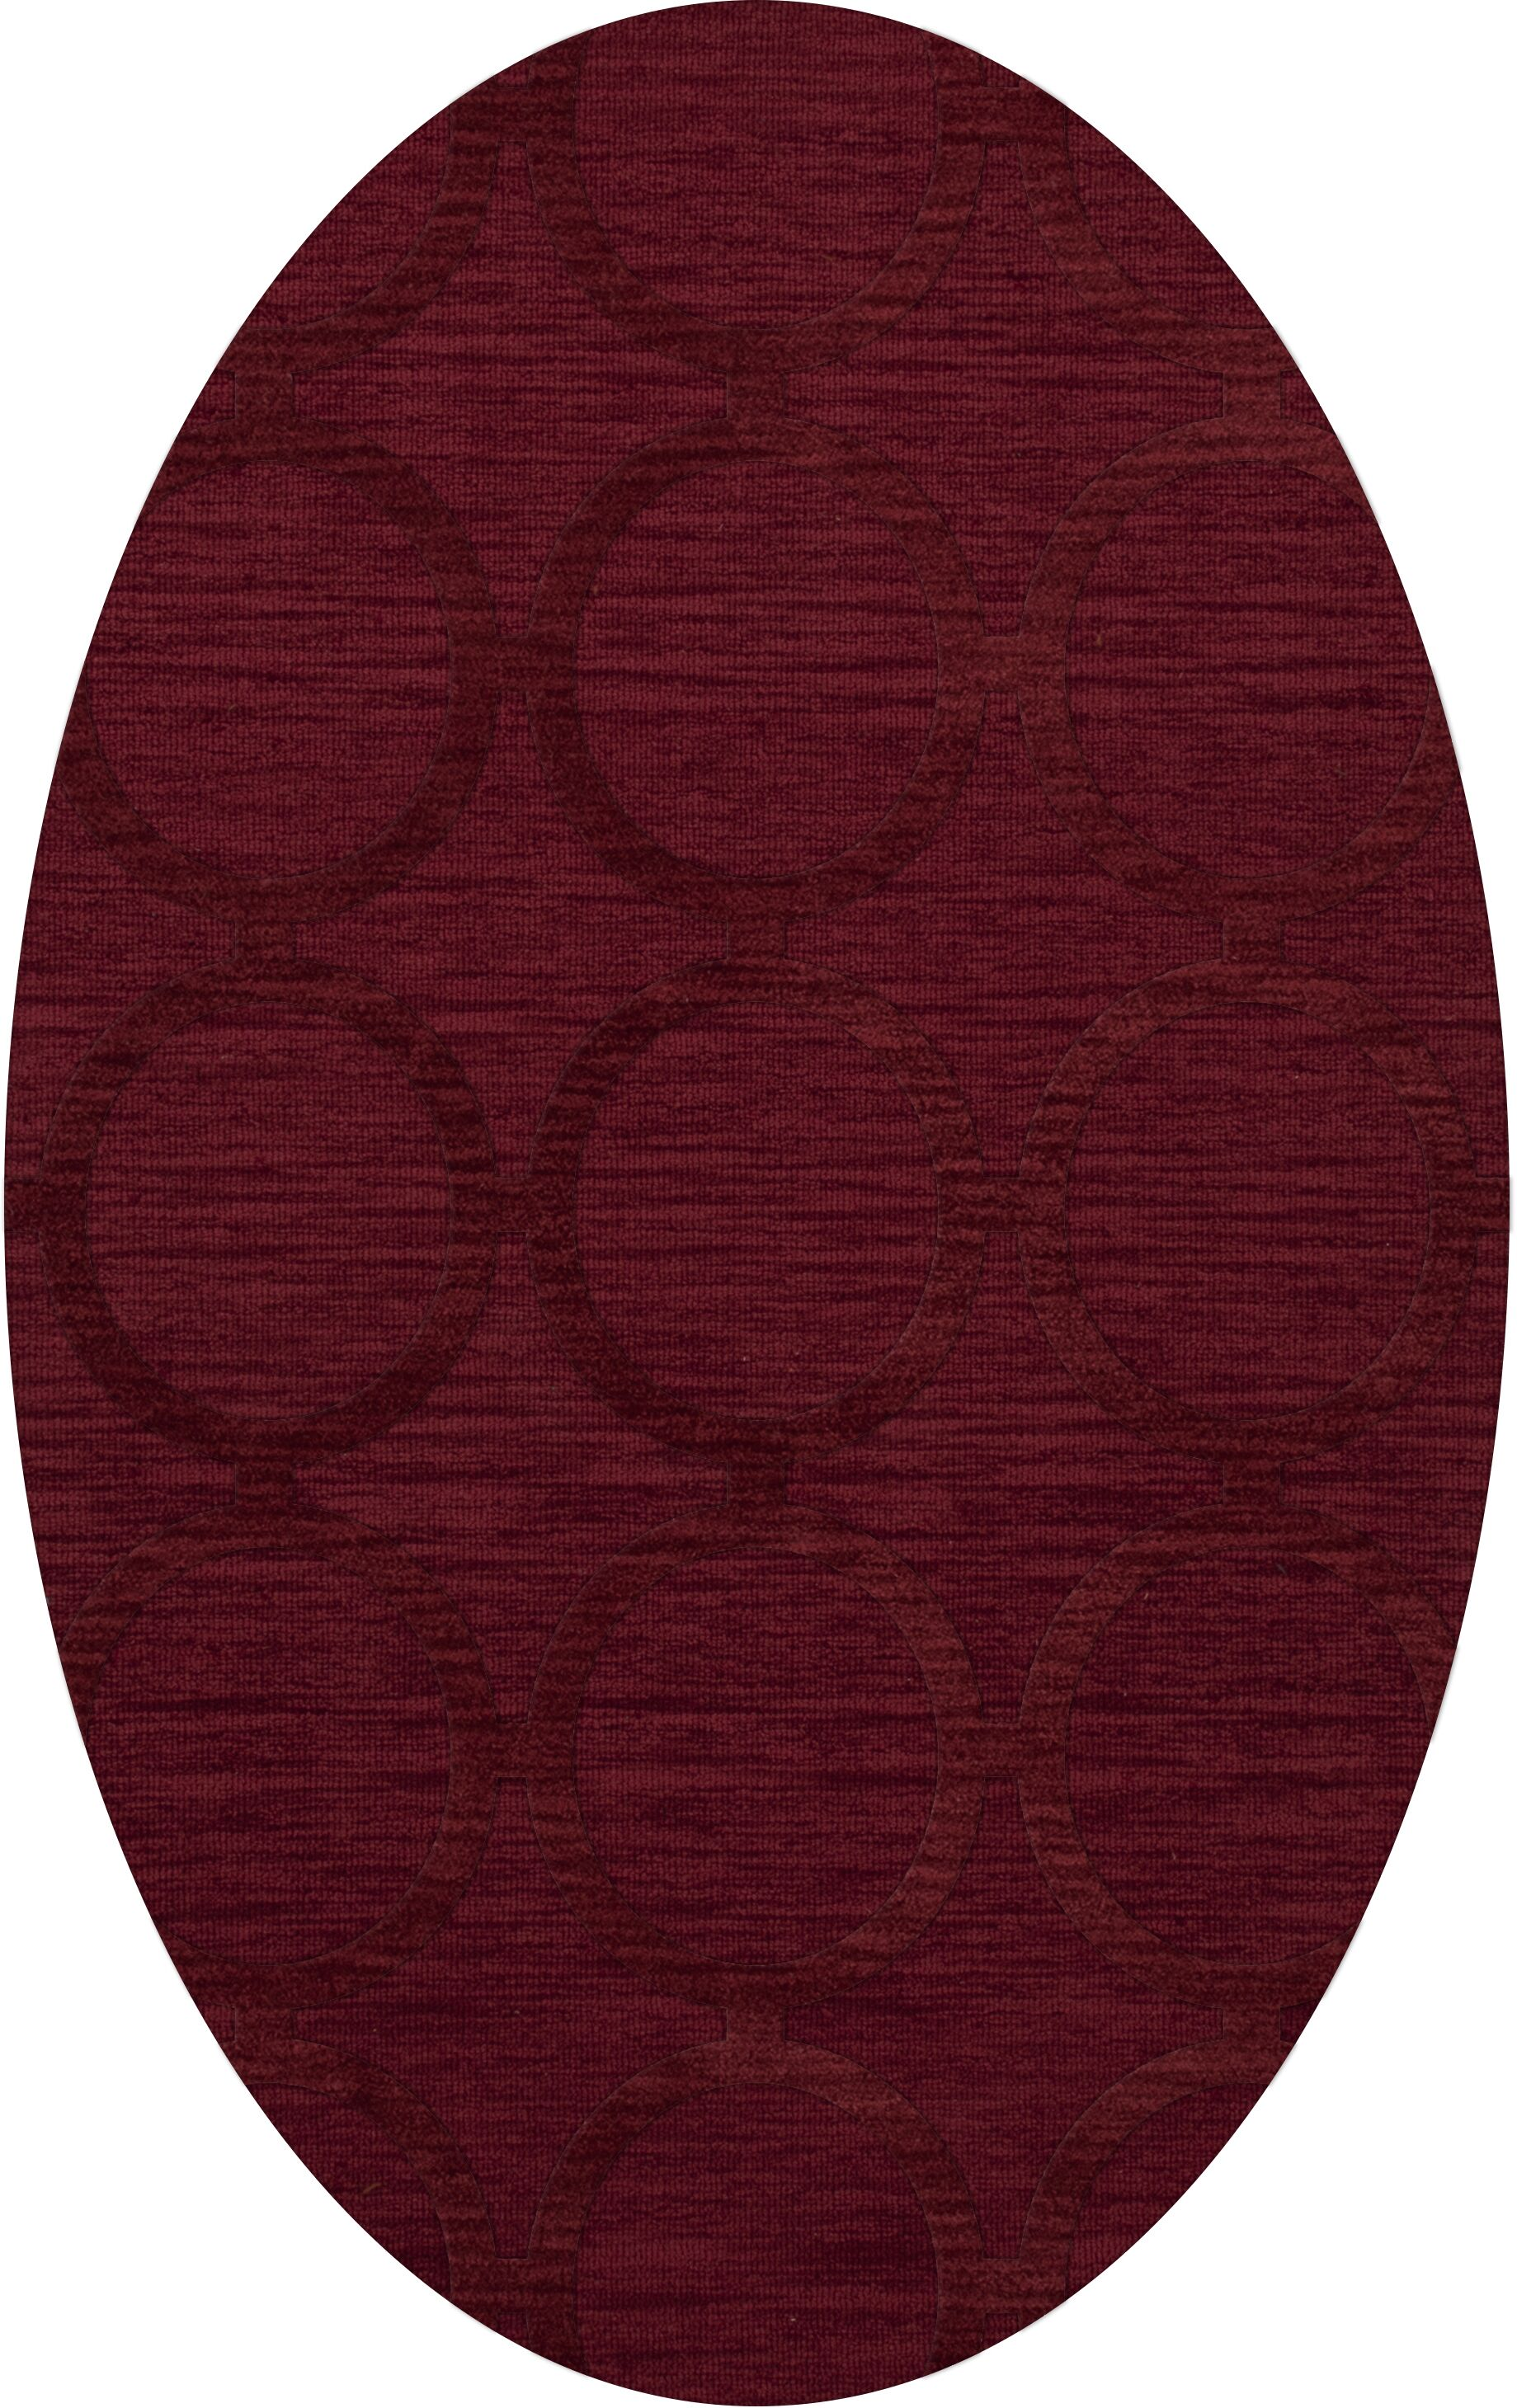 Dover Rich Red Area Rug Rug Size: Oval 12' x 18'